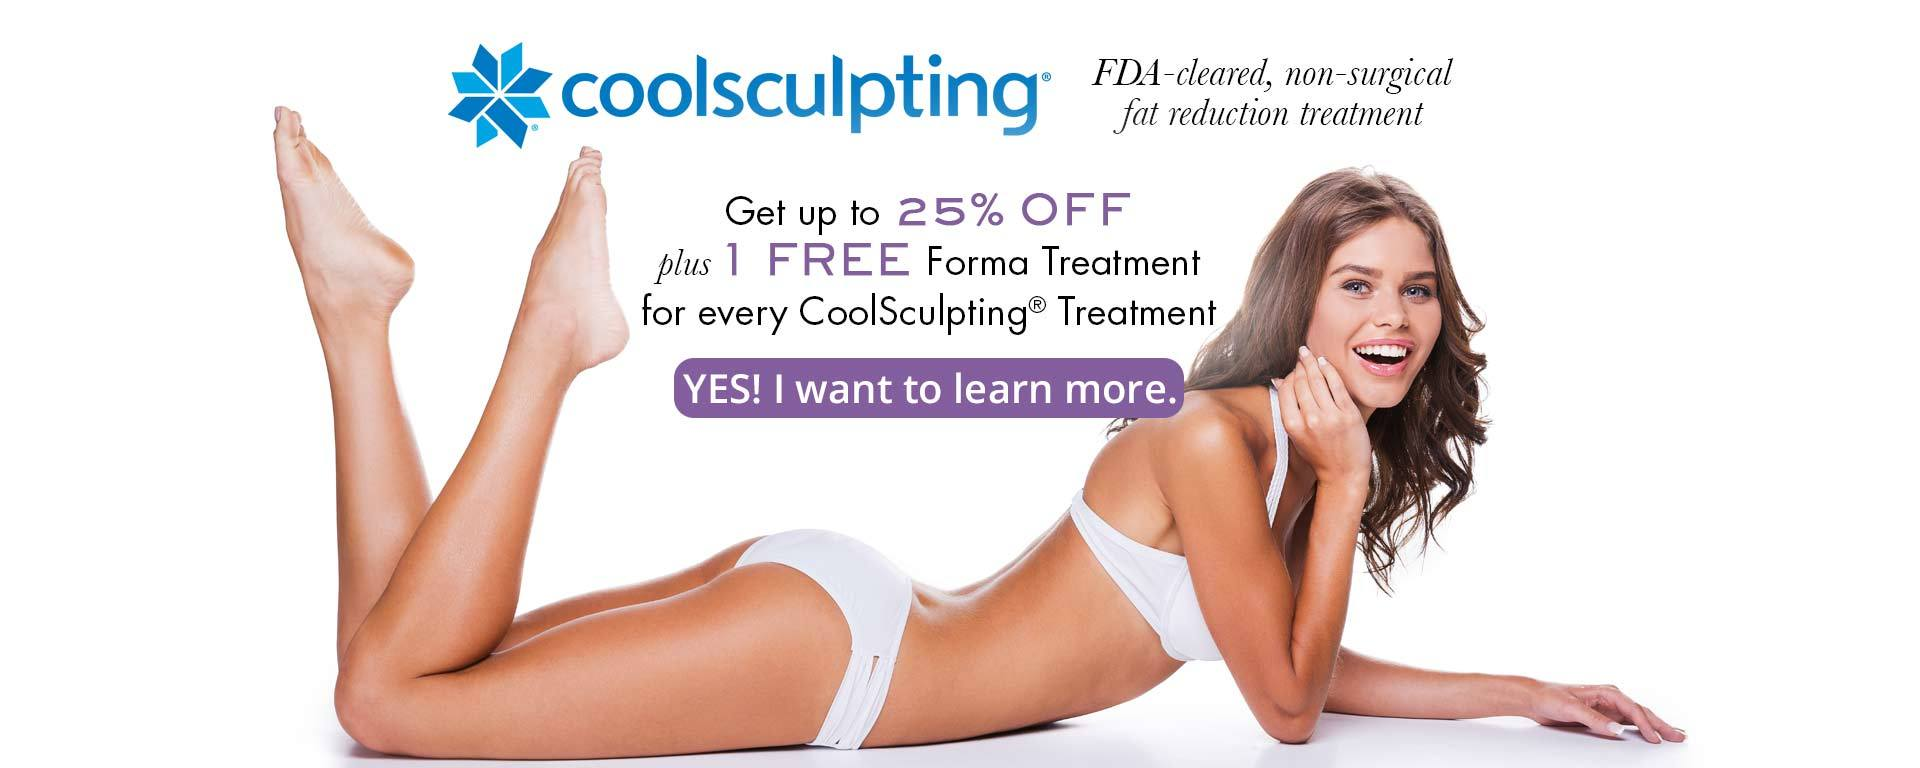 FDA-cleared, non-surgical fat reduction treatment. Get up to 25% OFF. Plus 1 FREE Forma Treatment for every CoolSculpting Treatment!